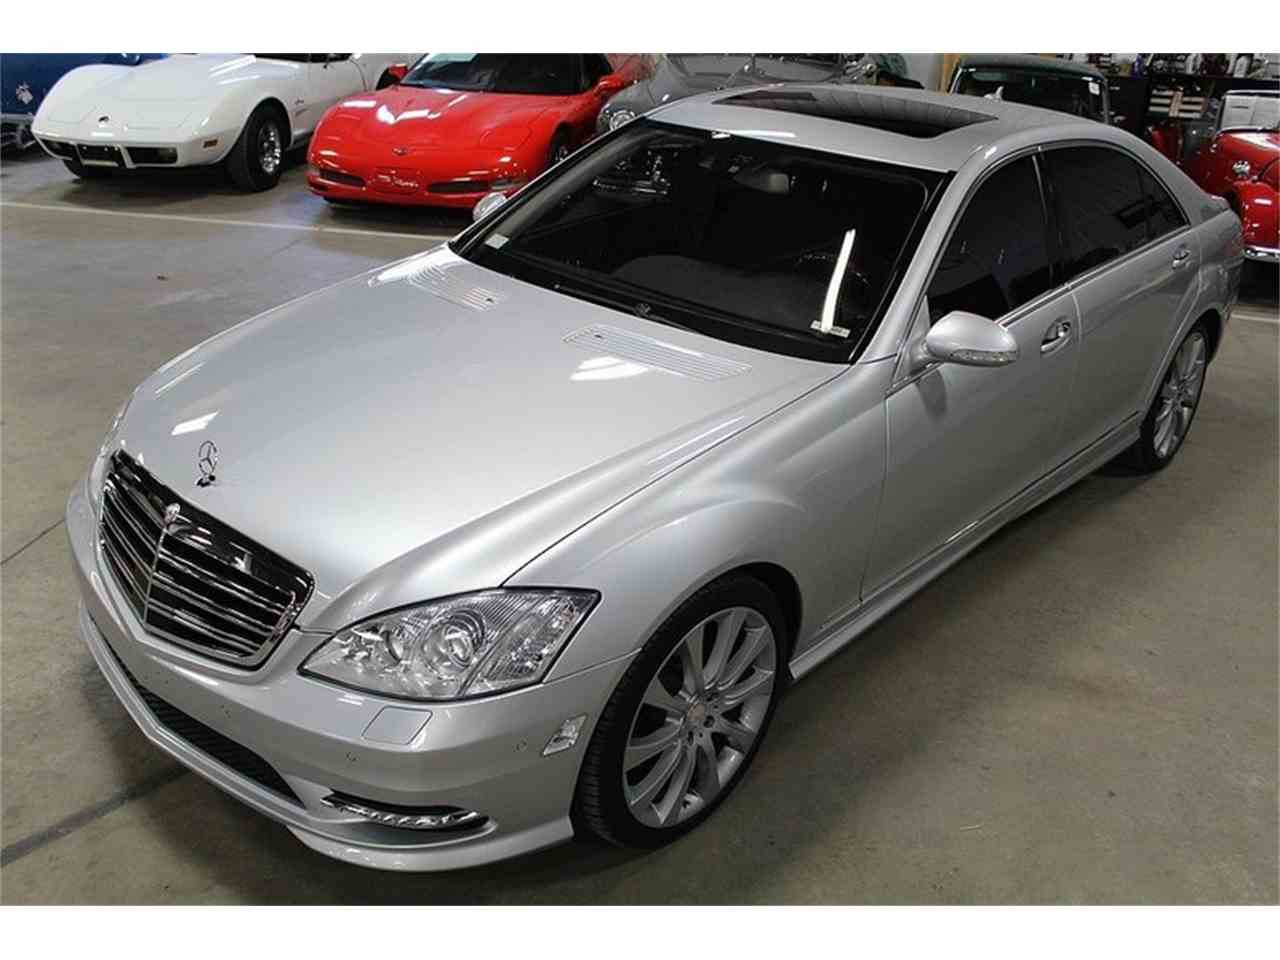 2008 mercedes benz s 550 cars trucks by owner autos post for Mercedes benz s550 for sale by owner